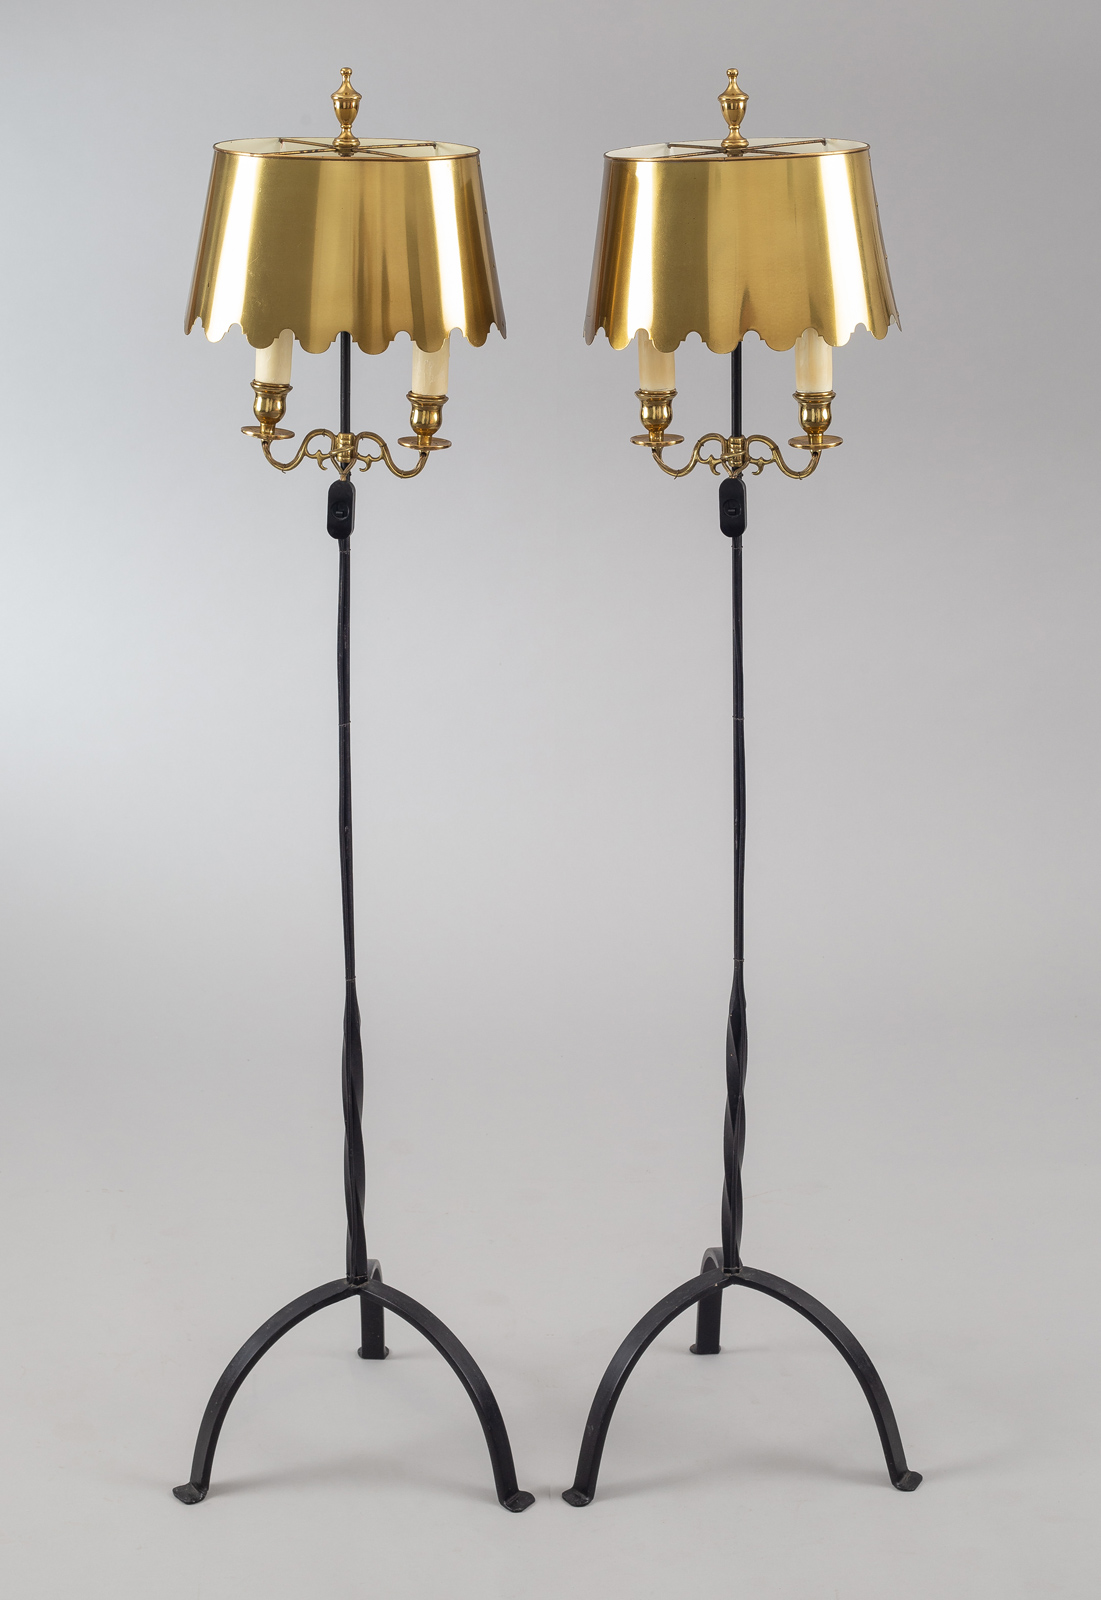 Vintage Fortuny Wrought Iron and Brass Floor Lamps